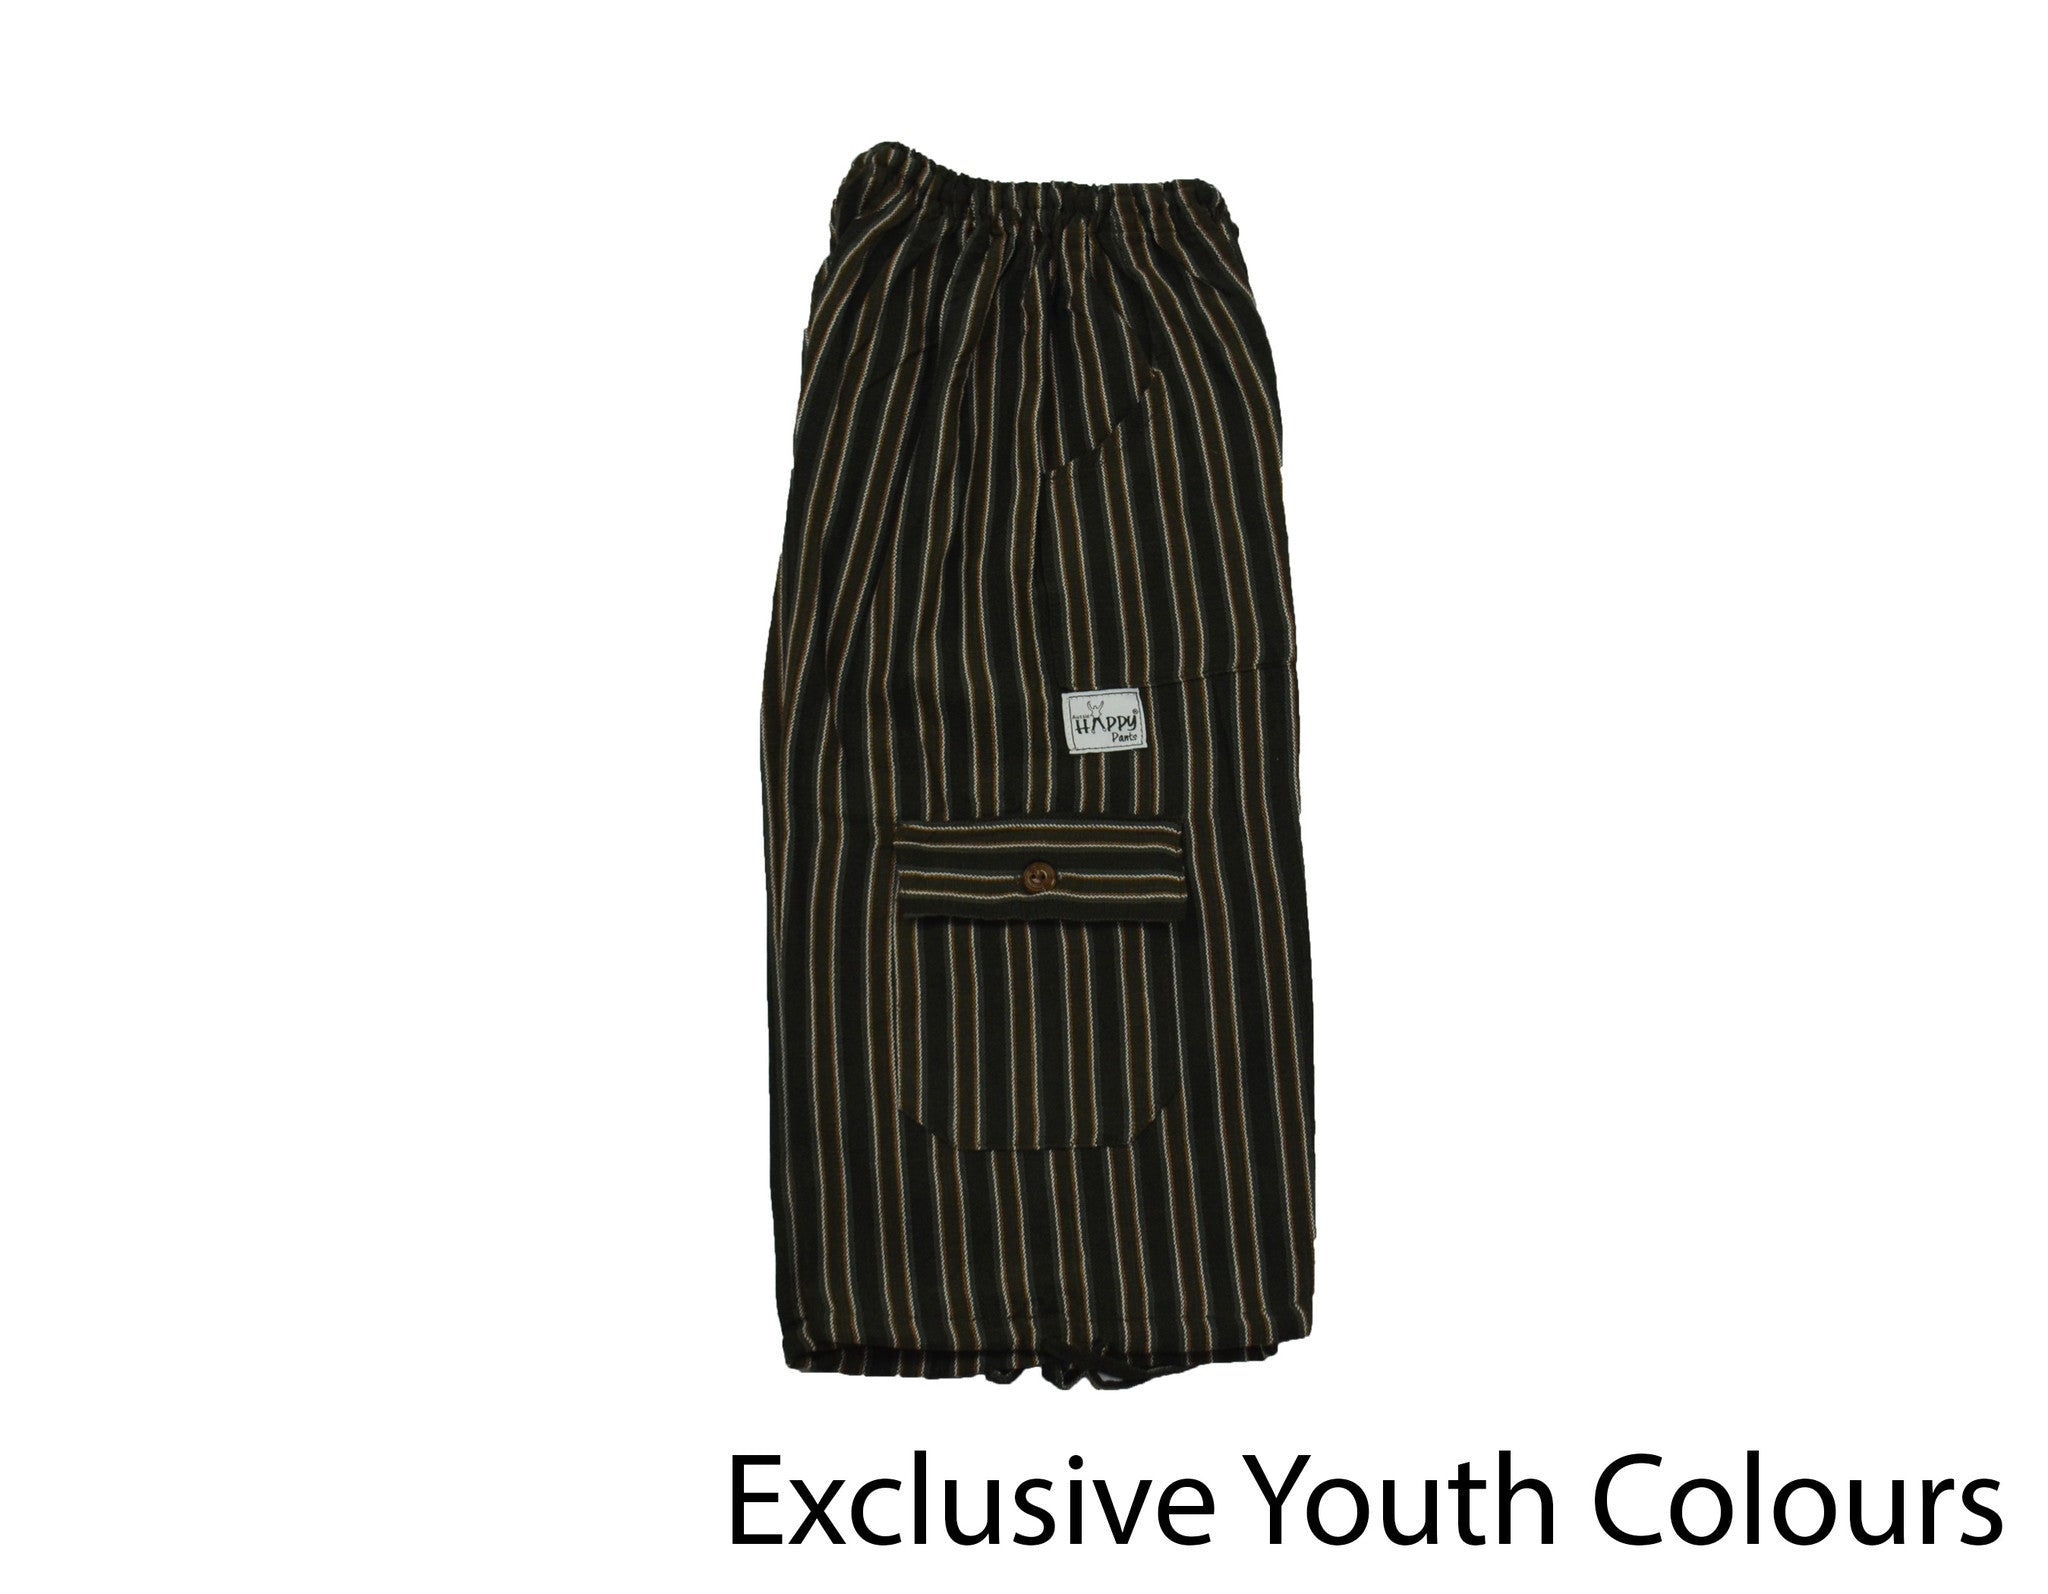 Brown Youth Boardshorts - Happy Pants